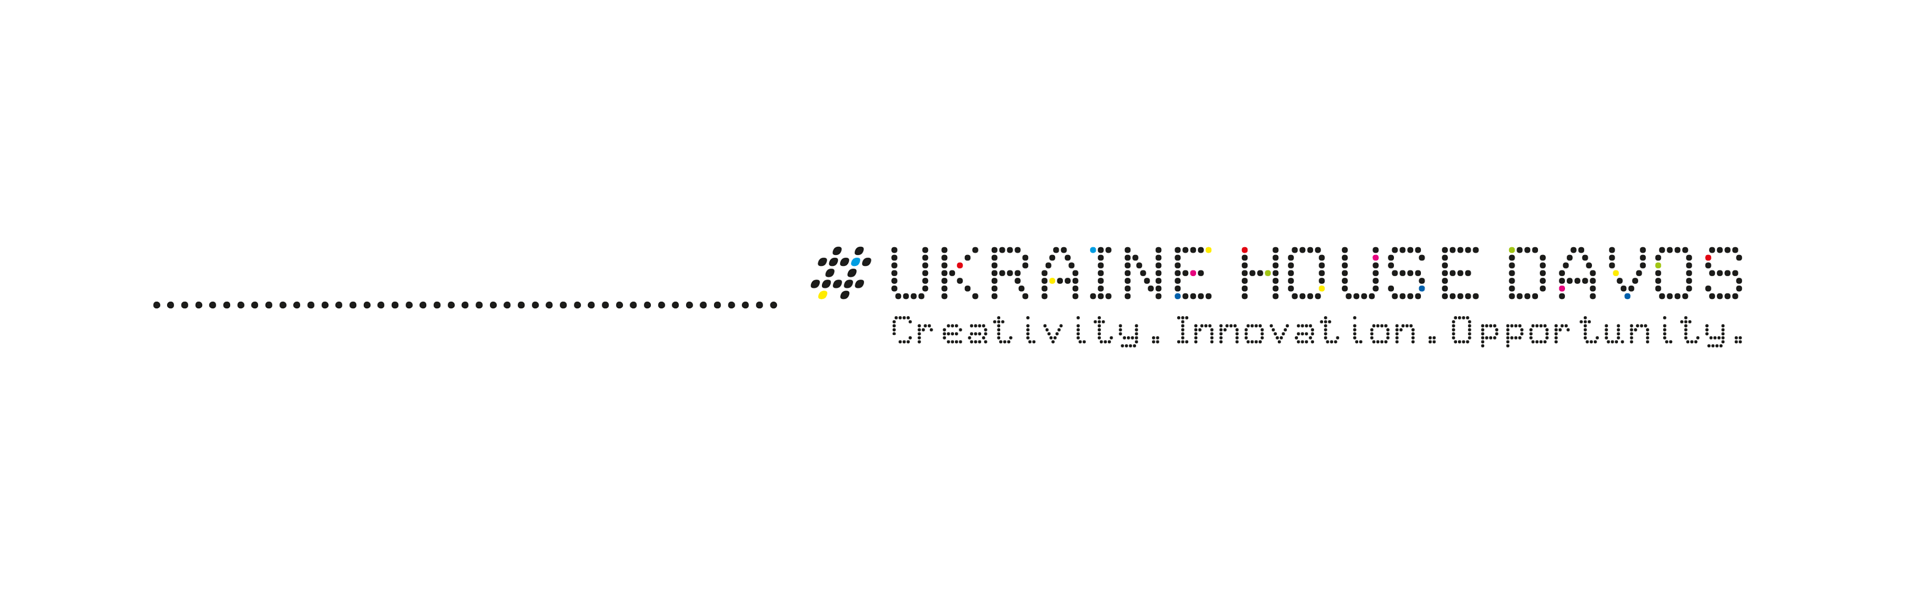 ukraine world economic forum davos